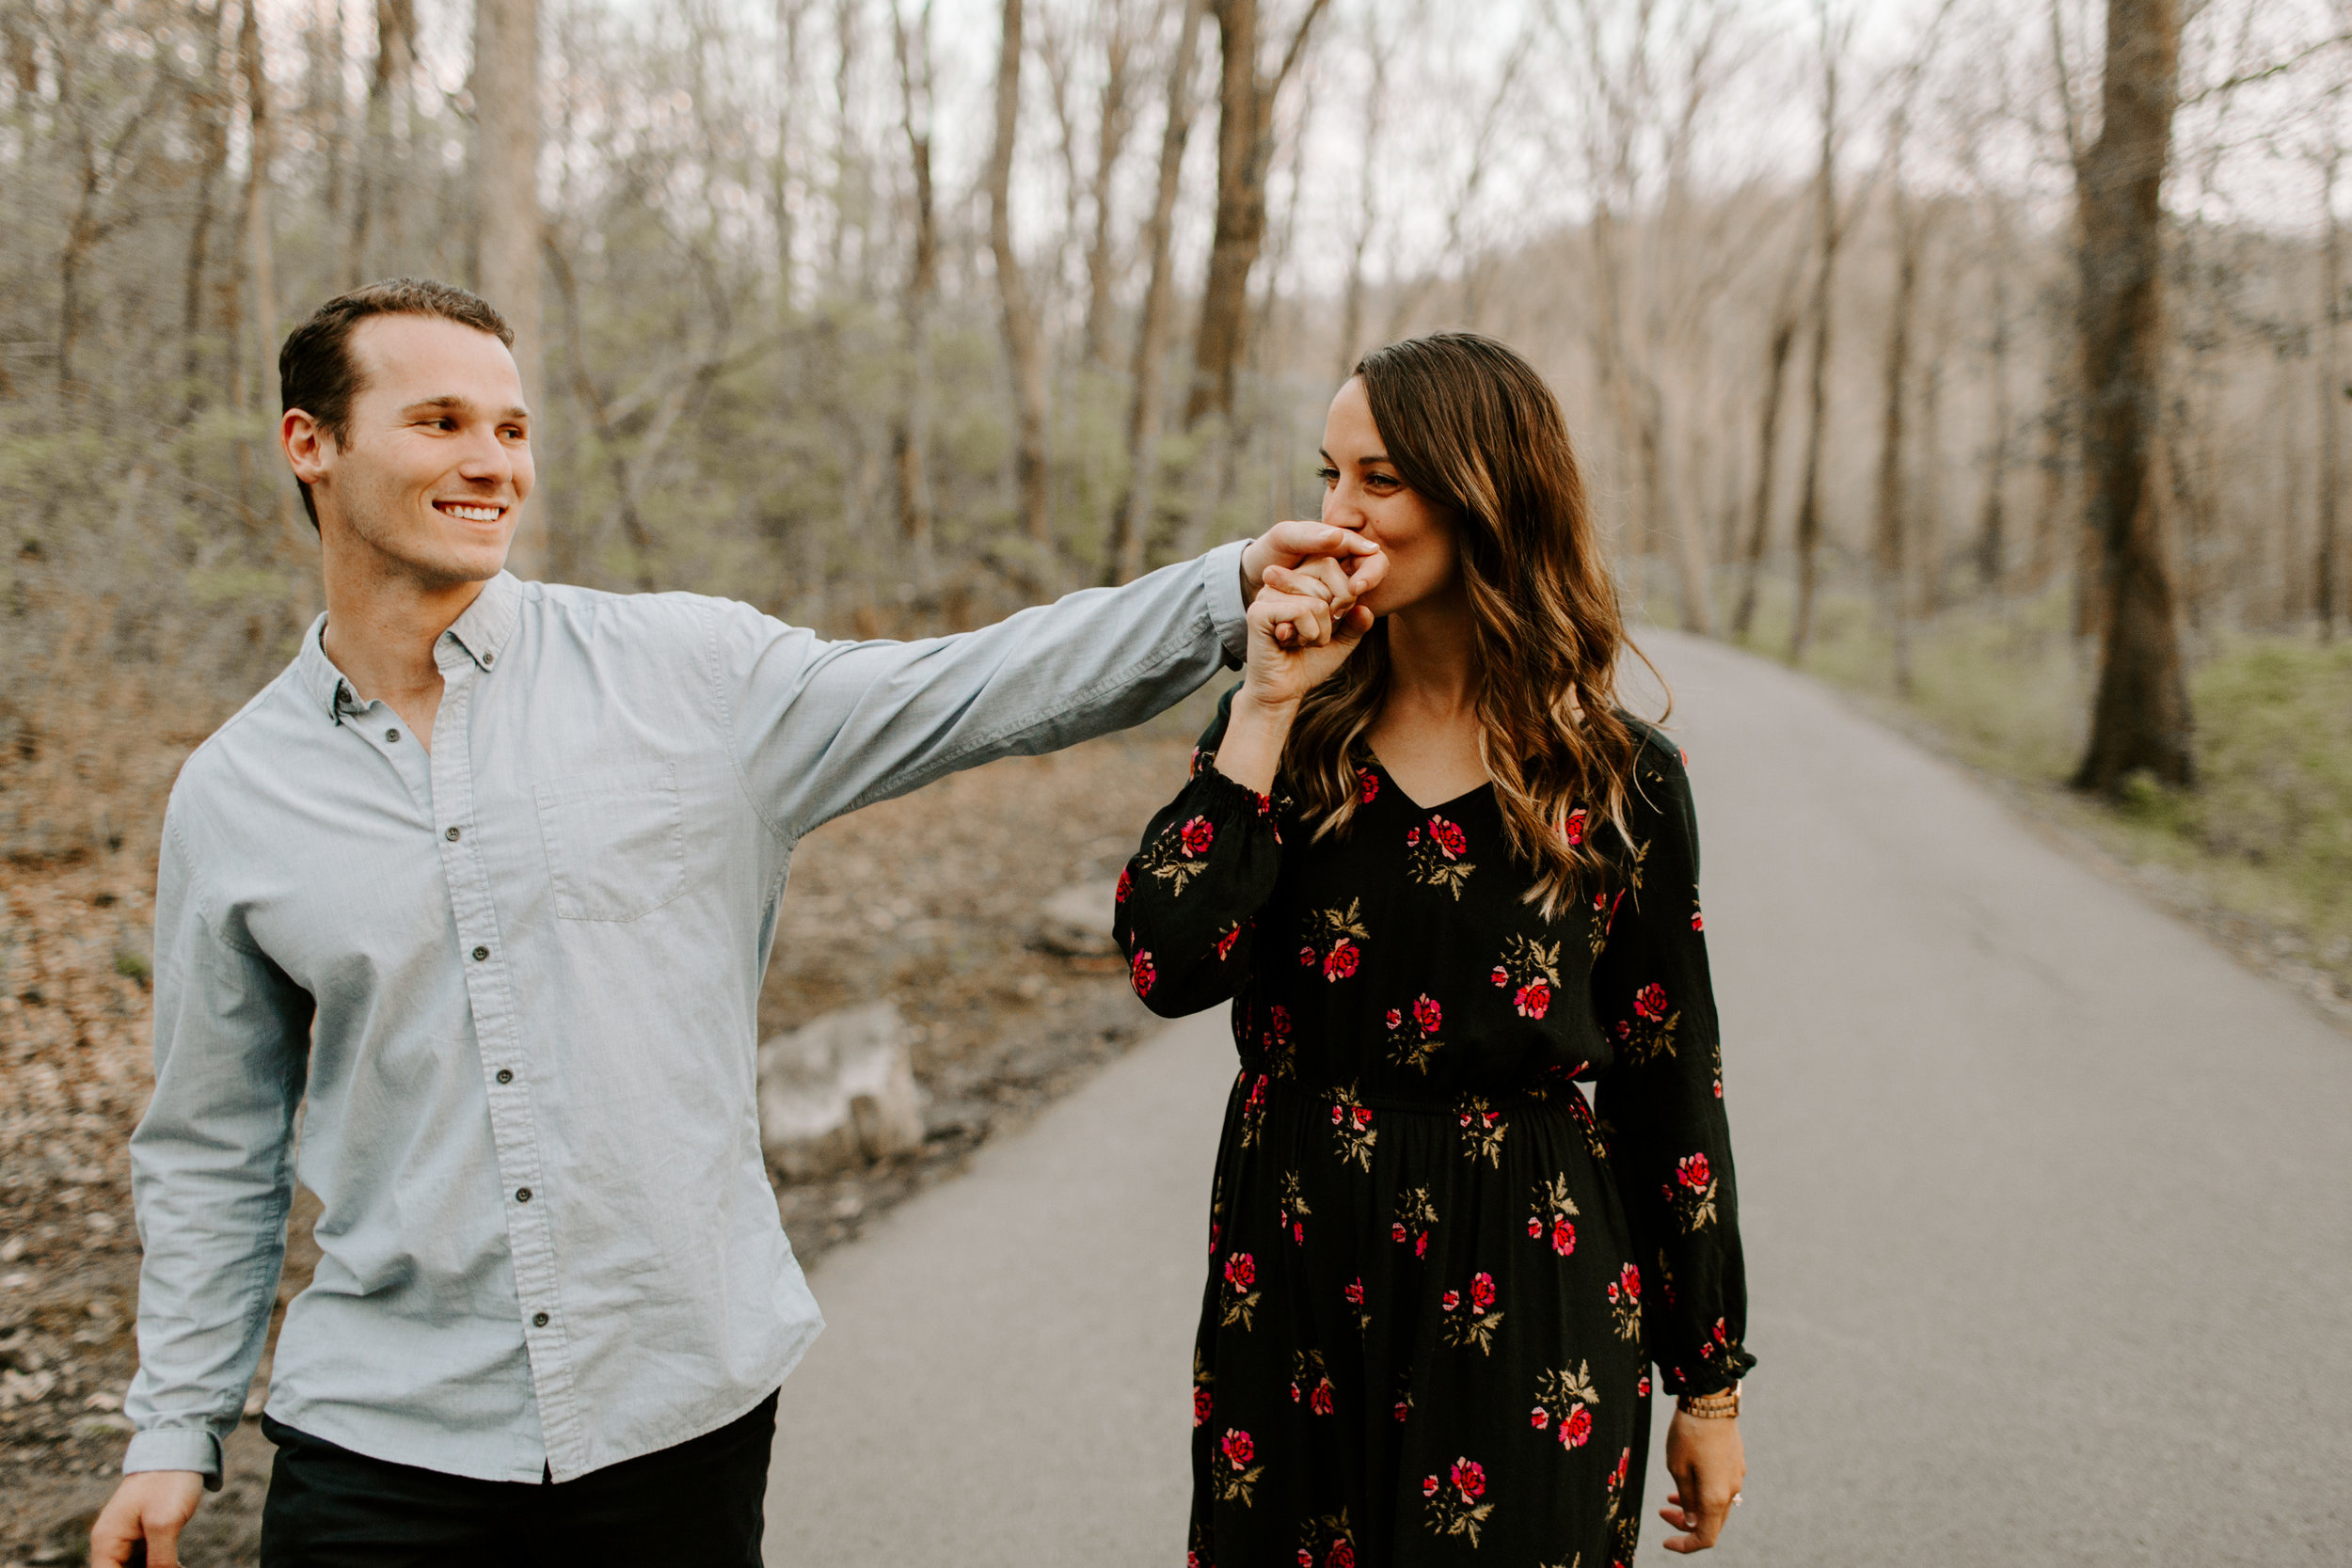 2018.03.16_kayleematt_nashville_engagement_elissavossphotography_previews_28.jpg